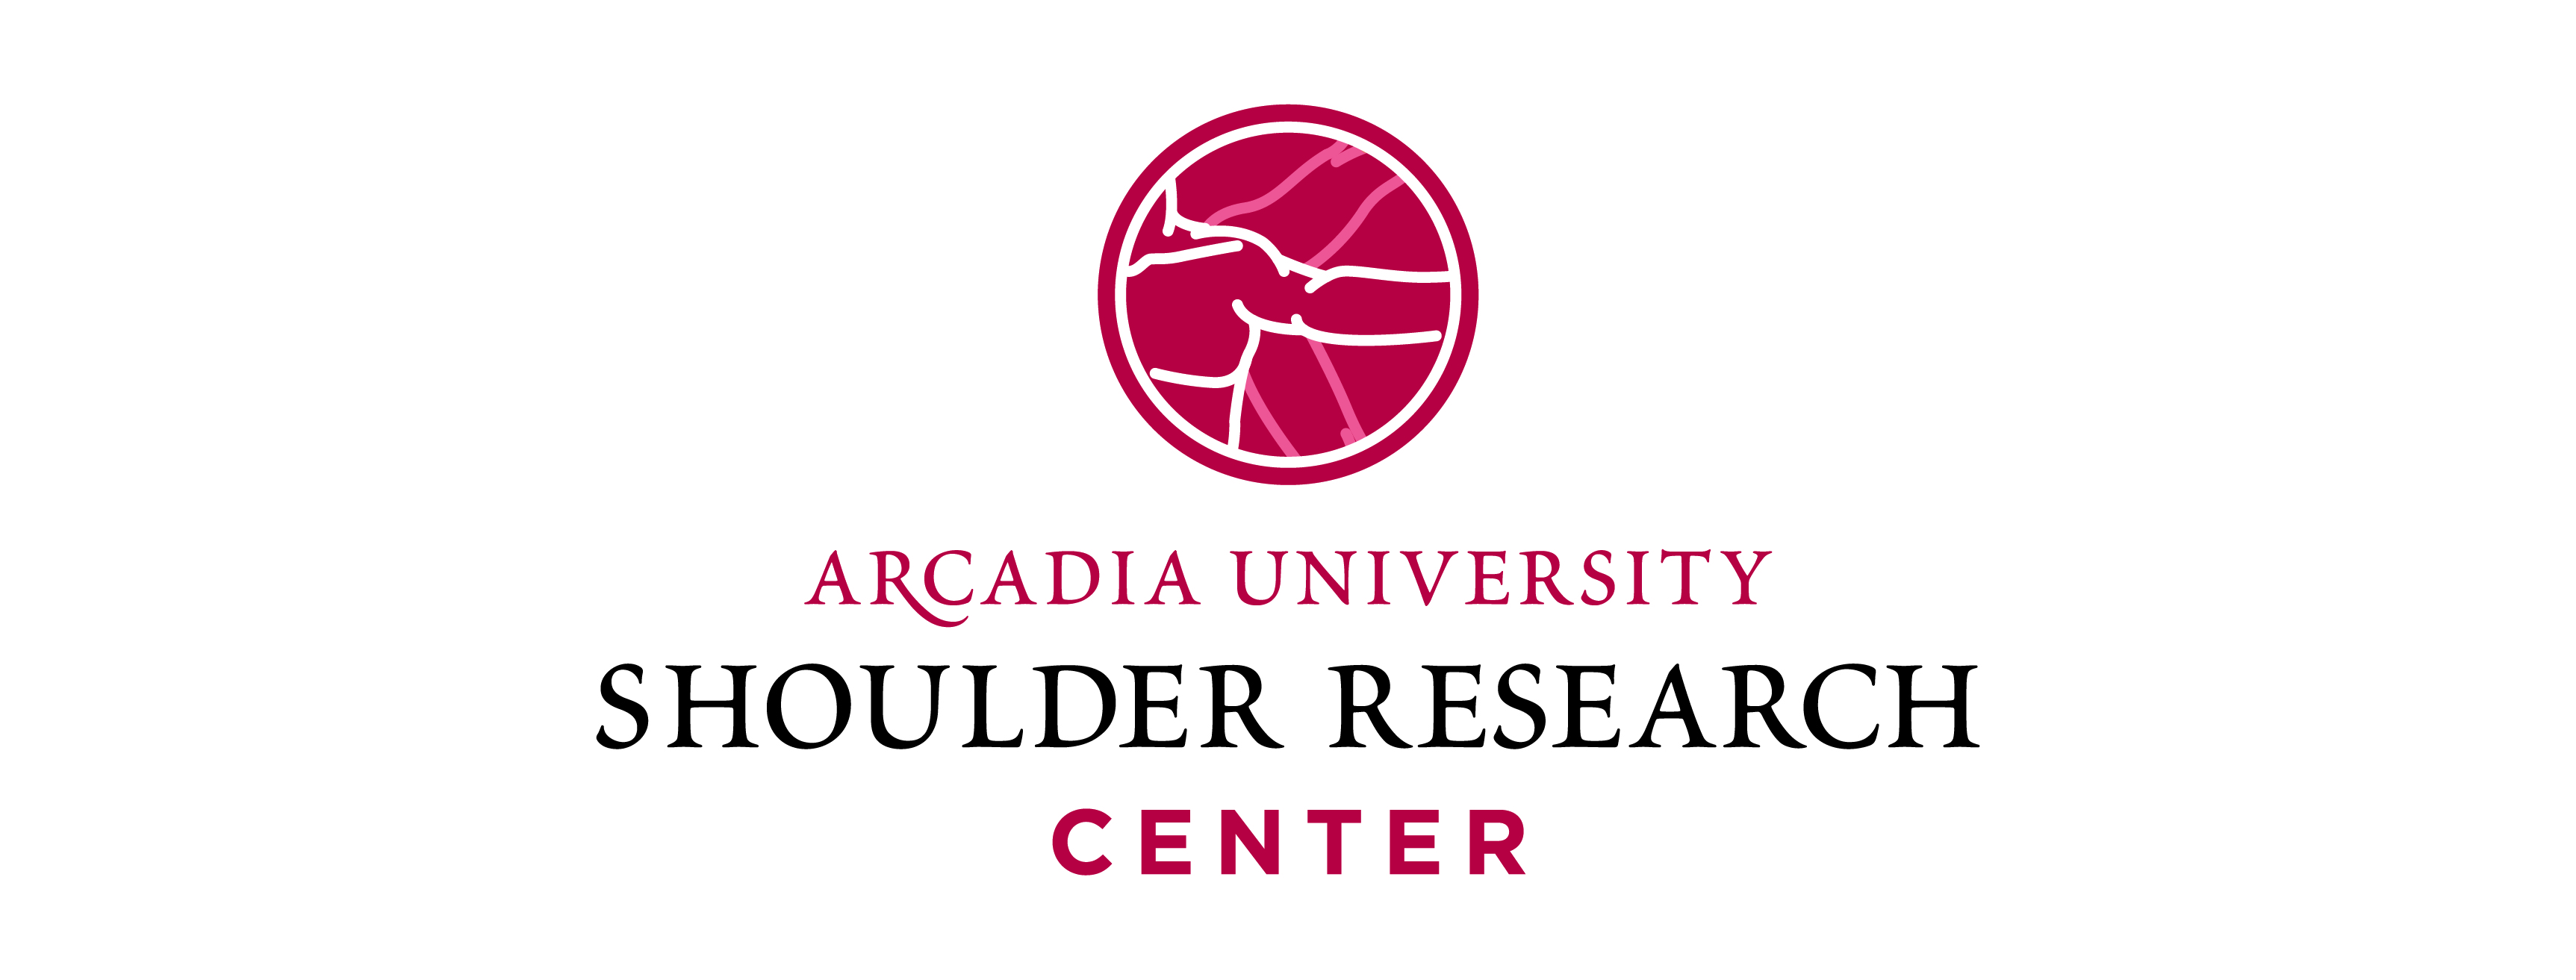 Shoulder research center projects arcadia university chats contact us xflitez Images